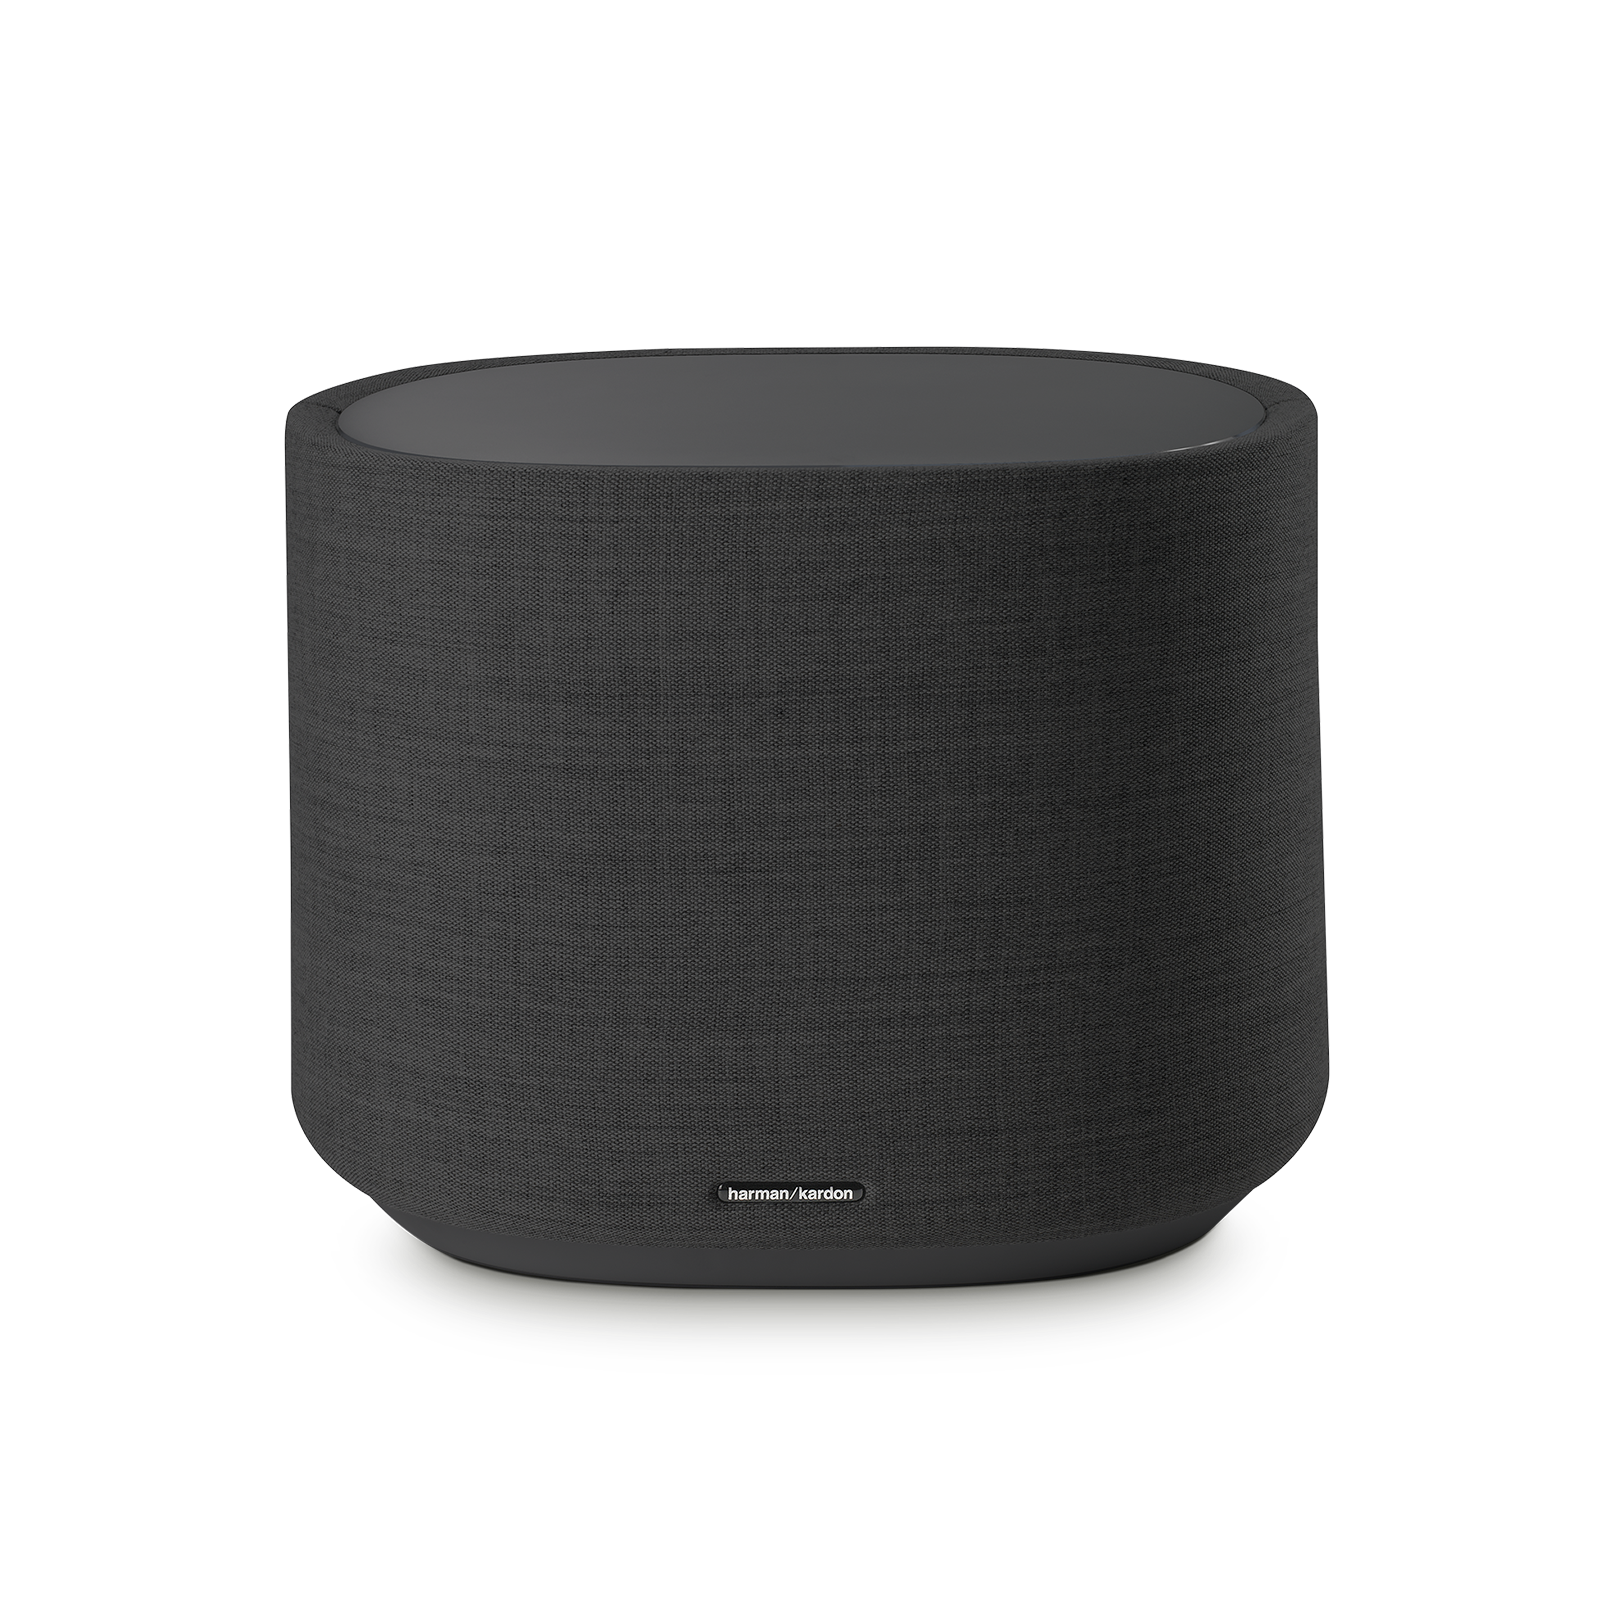 Harman Kardon Citation Sub - Black - Thundering bass for movies and music - Front